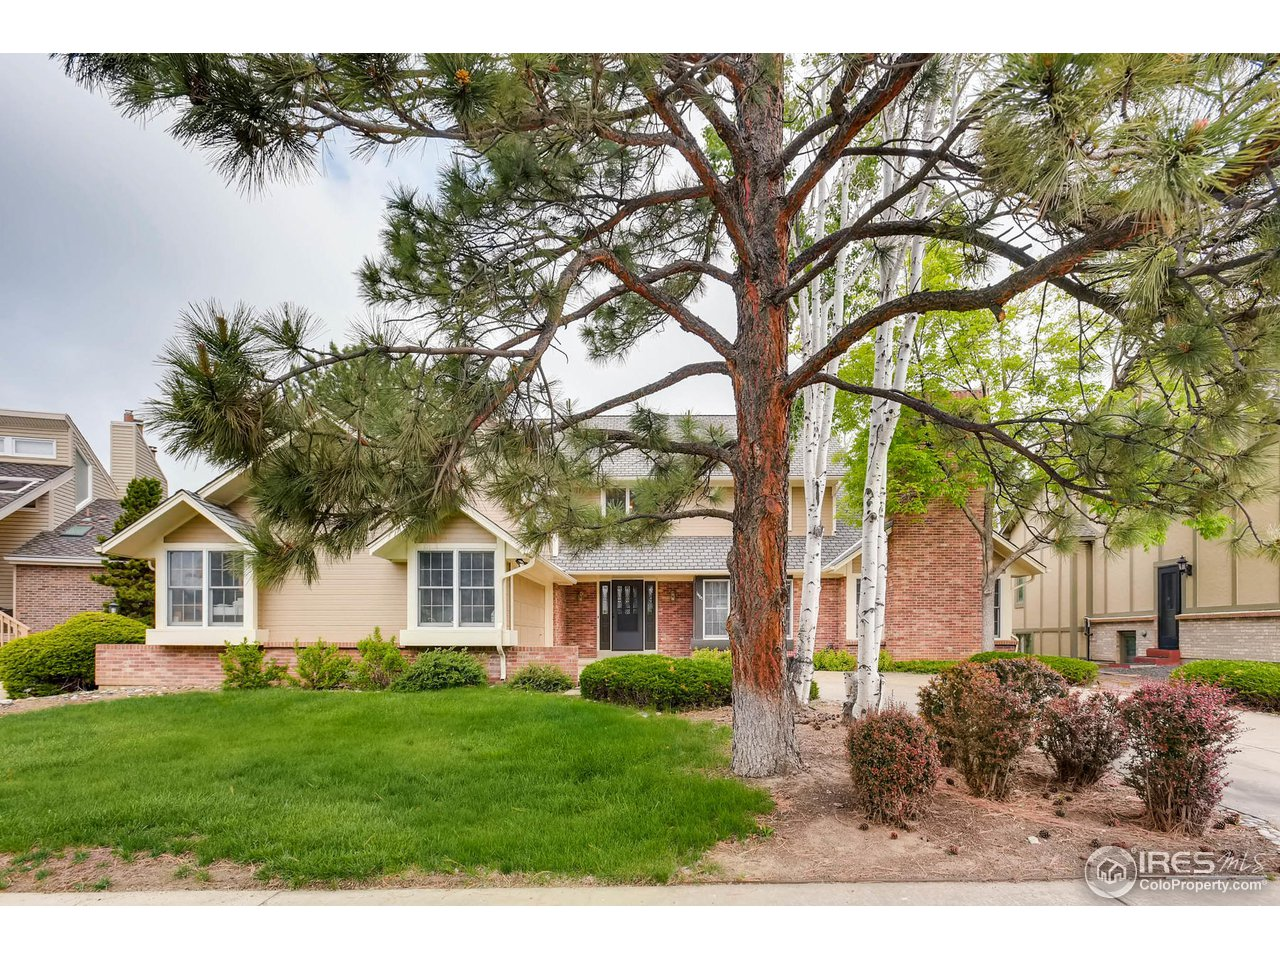 1461 Dunsford Way, Broomfield CO 80020